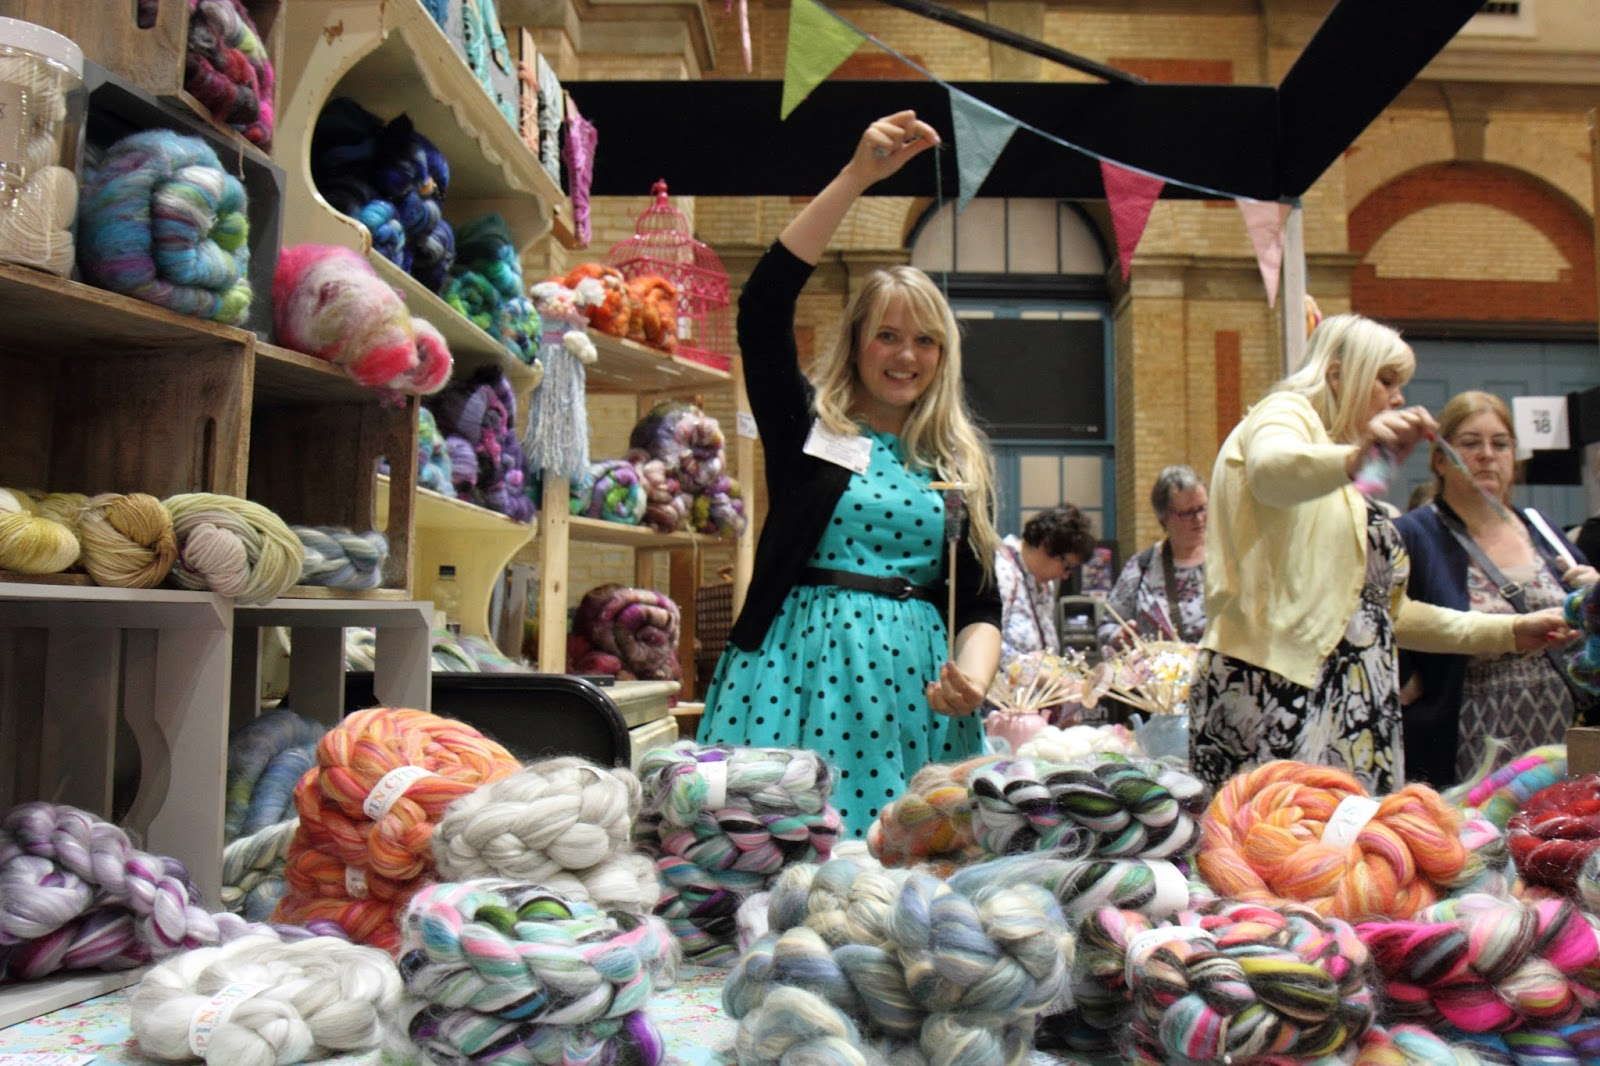 Knitting And Sewing Show Ingliston : Spin City: The Knitting and Stitching Show 2015 - My Spin City Stall and love...